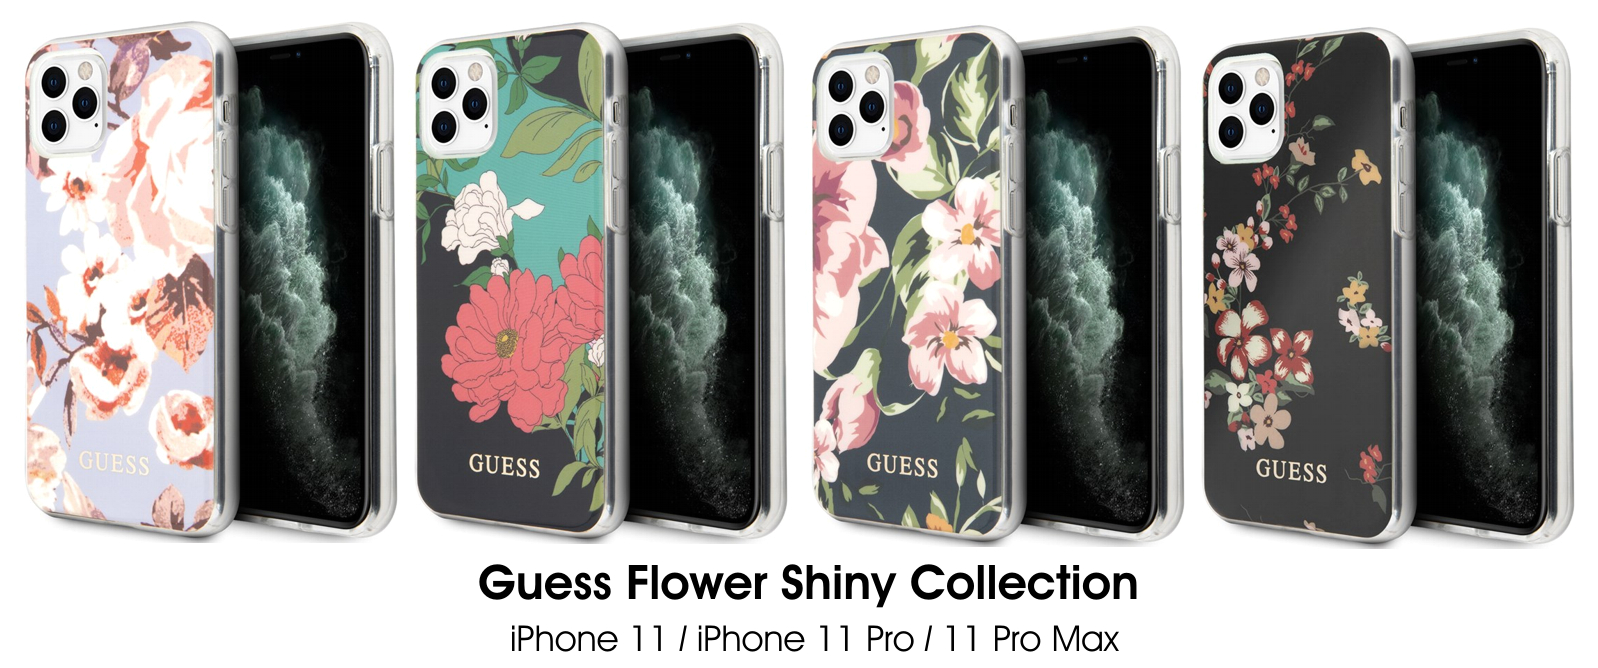 Guess-Flower-Shiny-Collection